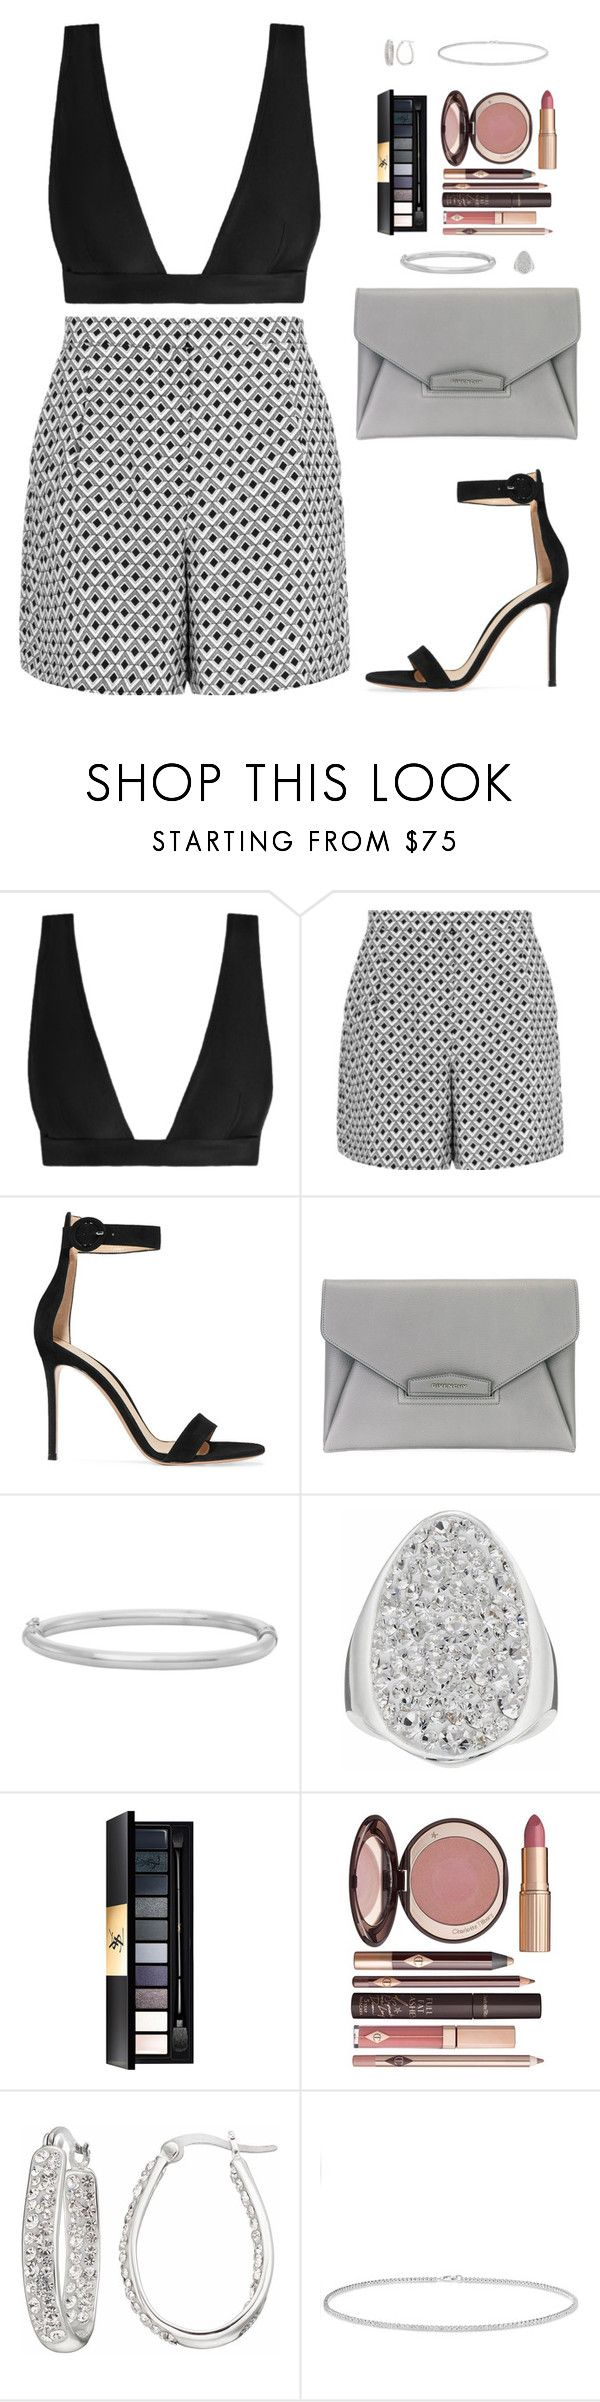 """""""Sin título #4573"""" by mdmsb on Polyvore featuring moda, Zimmermann, Reiss, Gianvito Rossi, Givenchy, Yves Saint Laurent, Charlotte Tilbury y Anne Sisteron"""